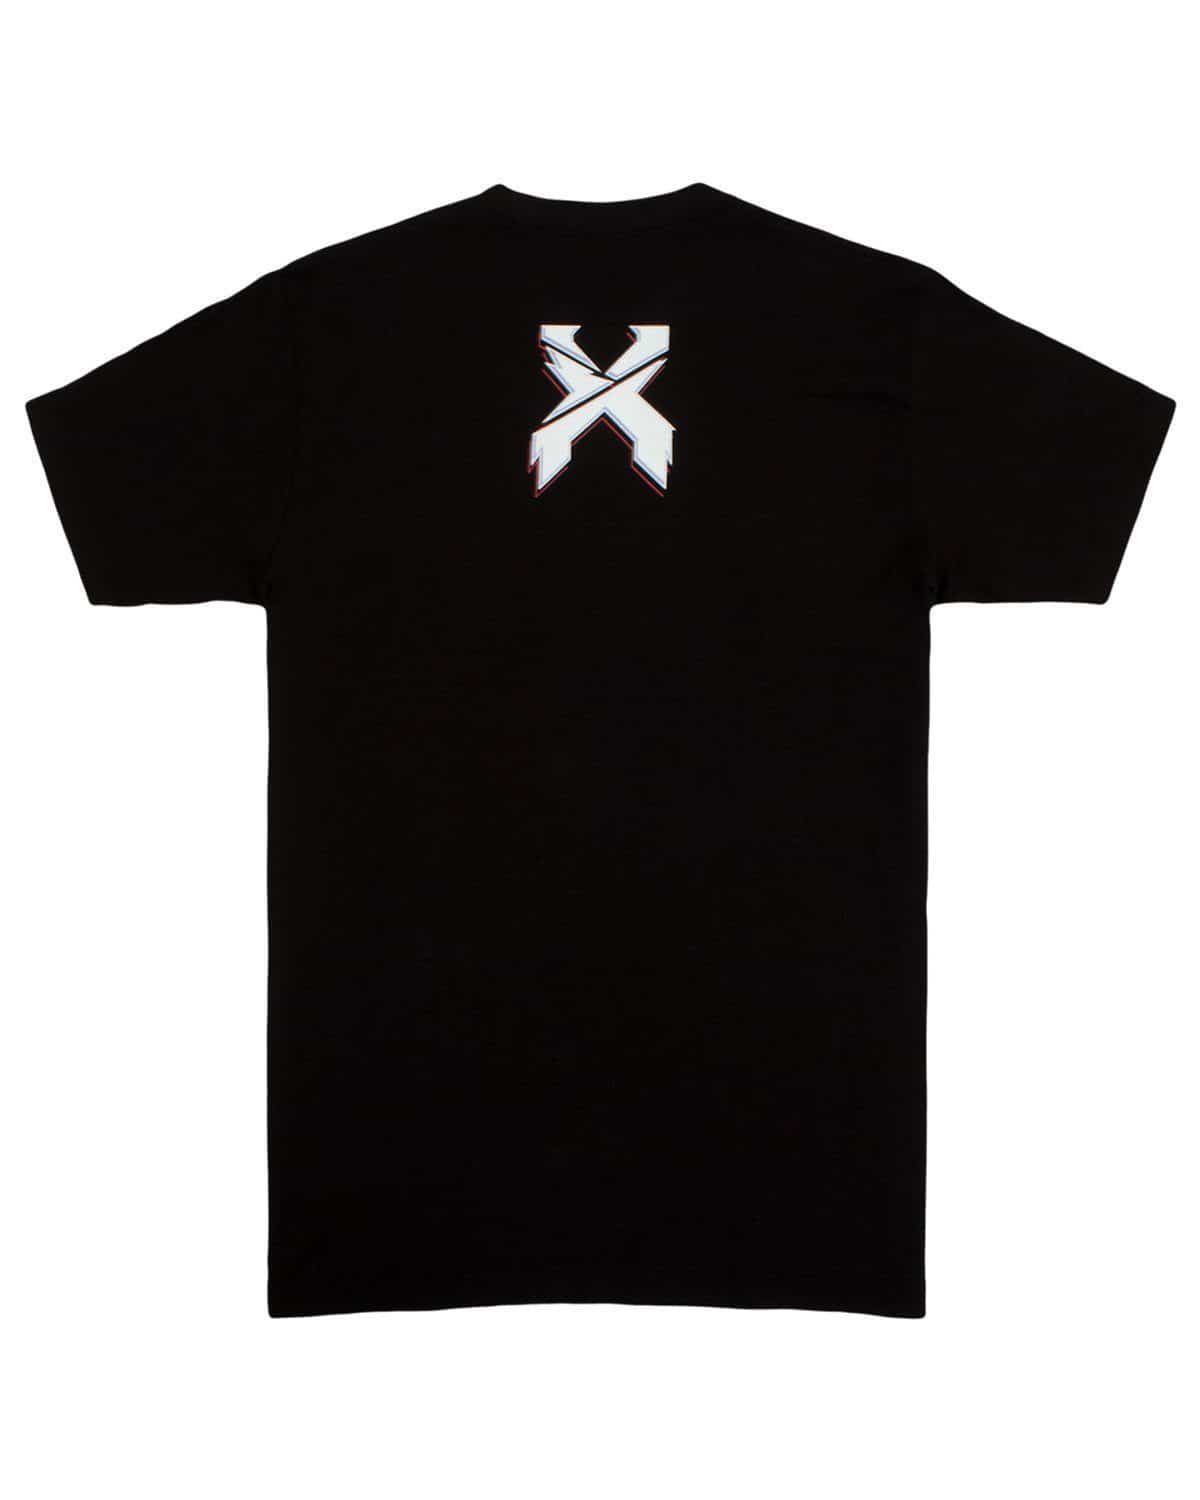 Excision 'Cyborg Rex' Unisex T-Shirt - Black/Red